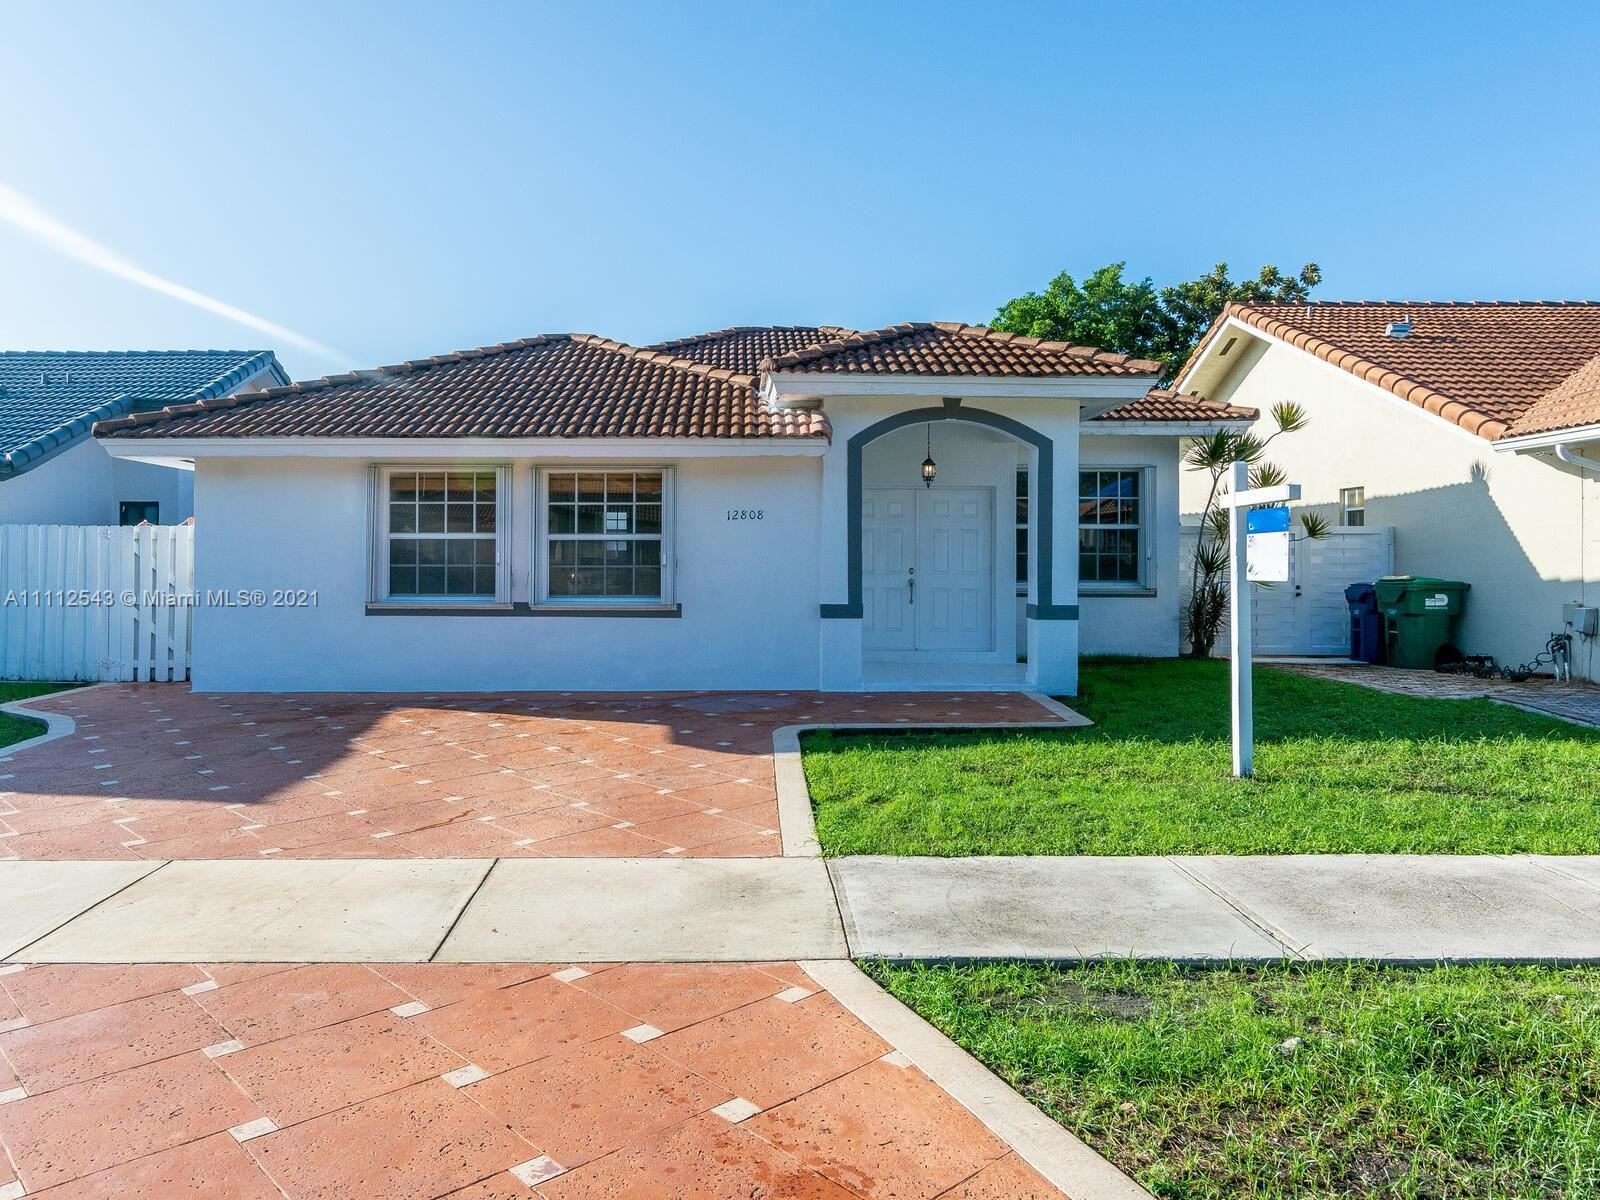 Photo of 12808 NW 11th Ter, Miami, FL 33182 (MLS # A11112543)